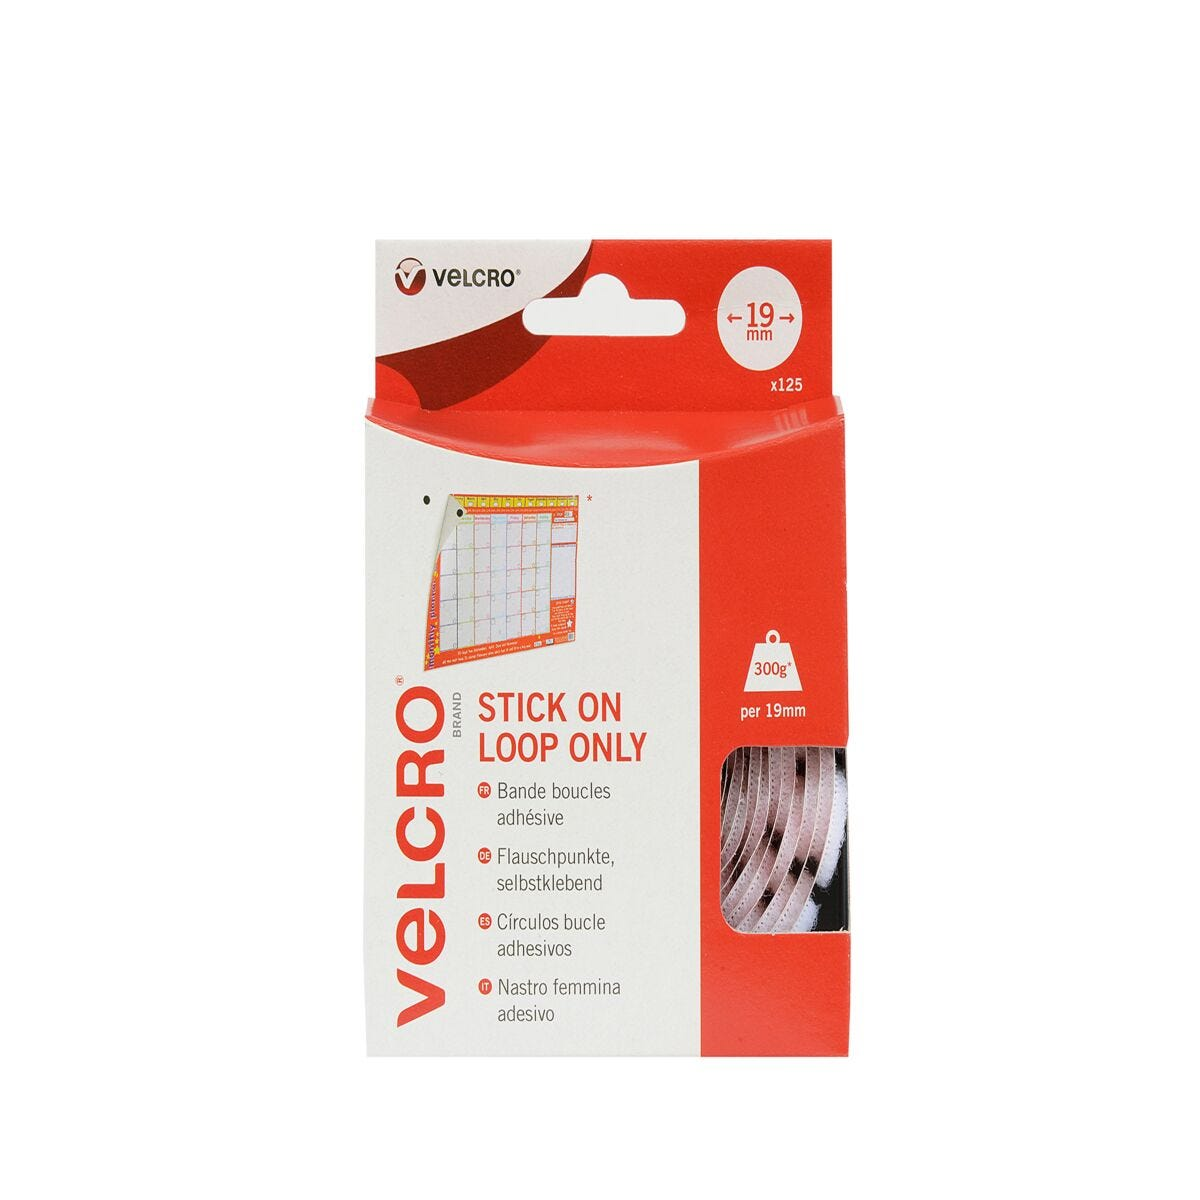 VELCRO Brand Stick On Coins Loop Only White